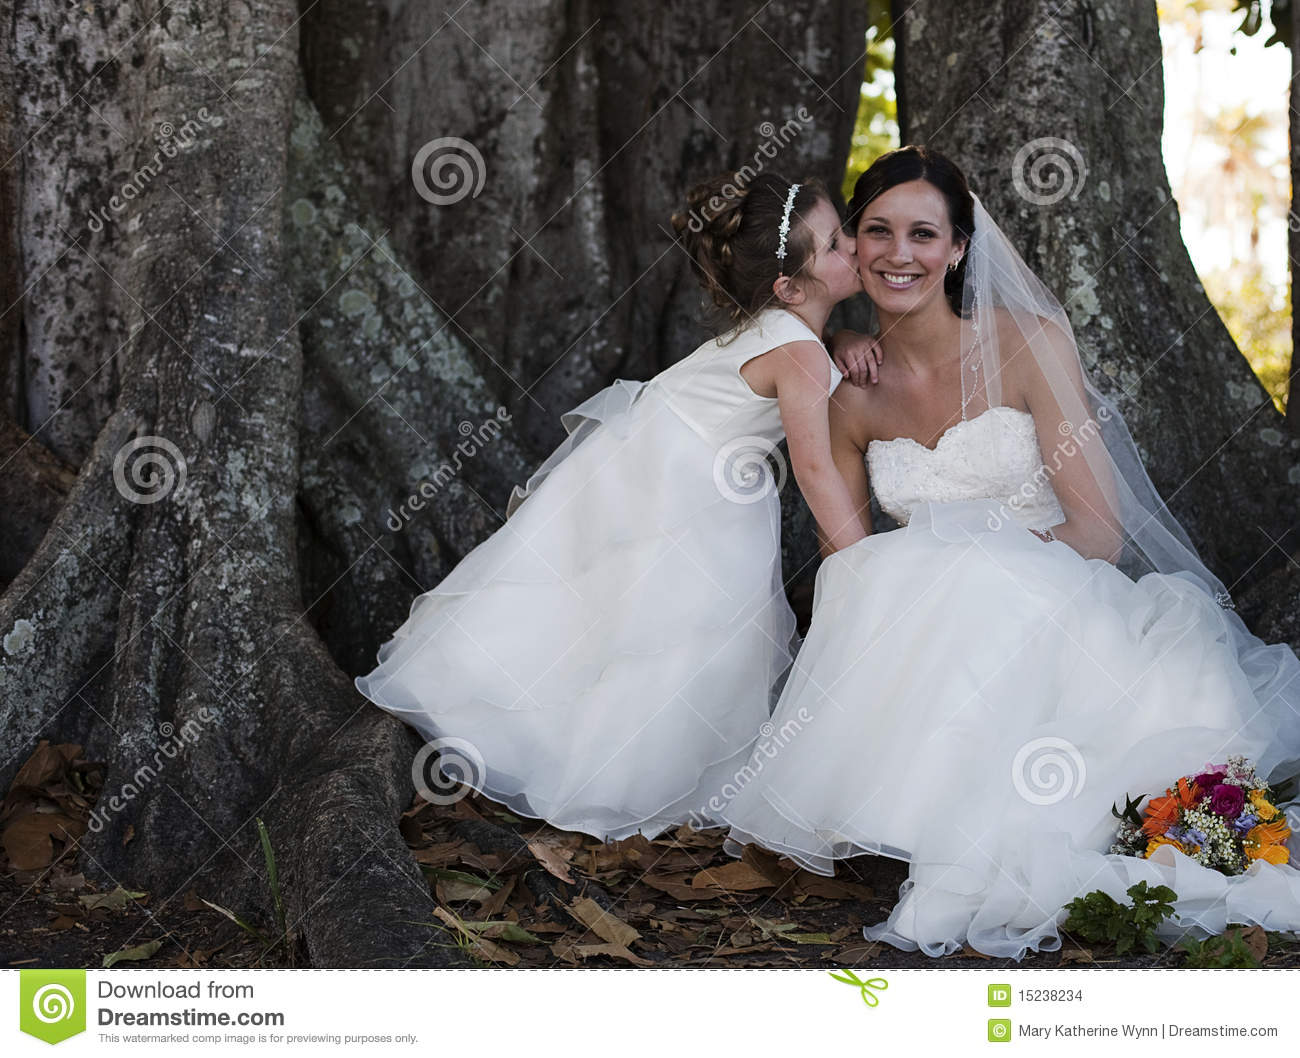 085775b48a92 Bride And Flower Girl Under Tree Stock Photo - Image of outdoors ...